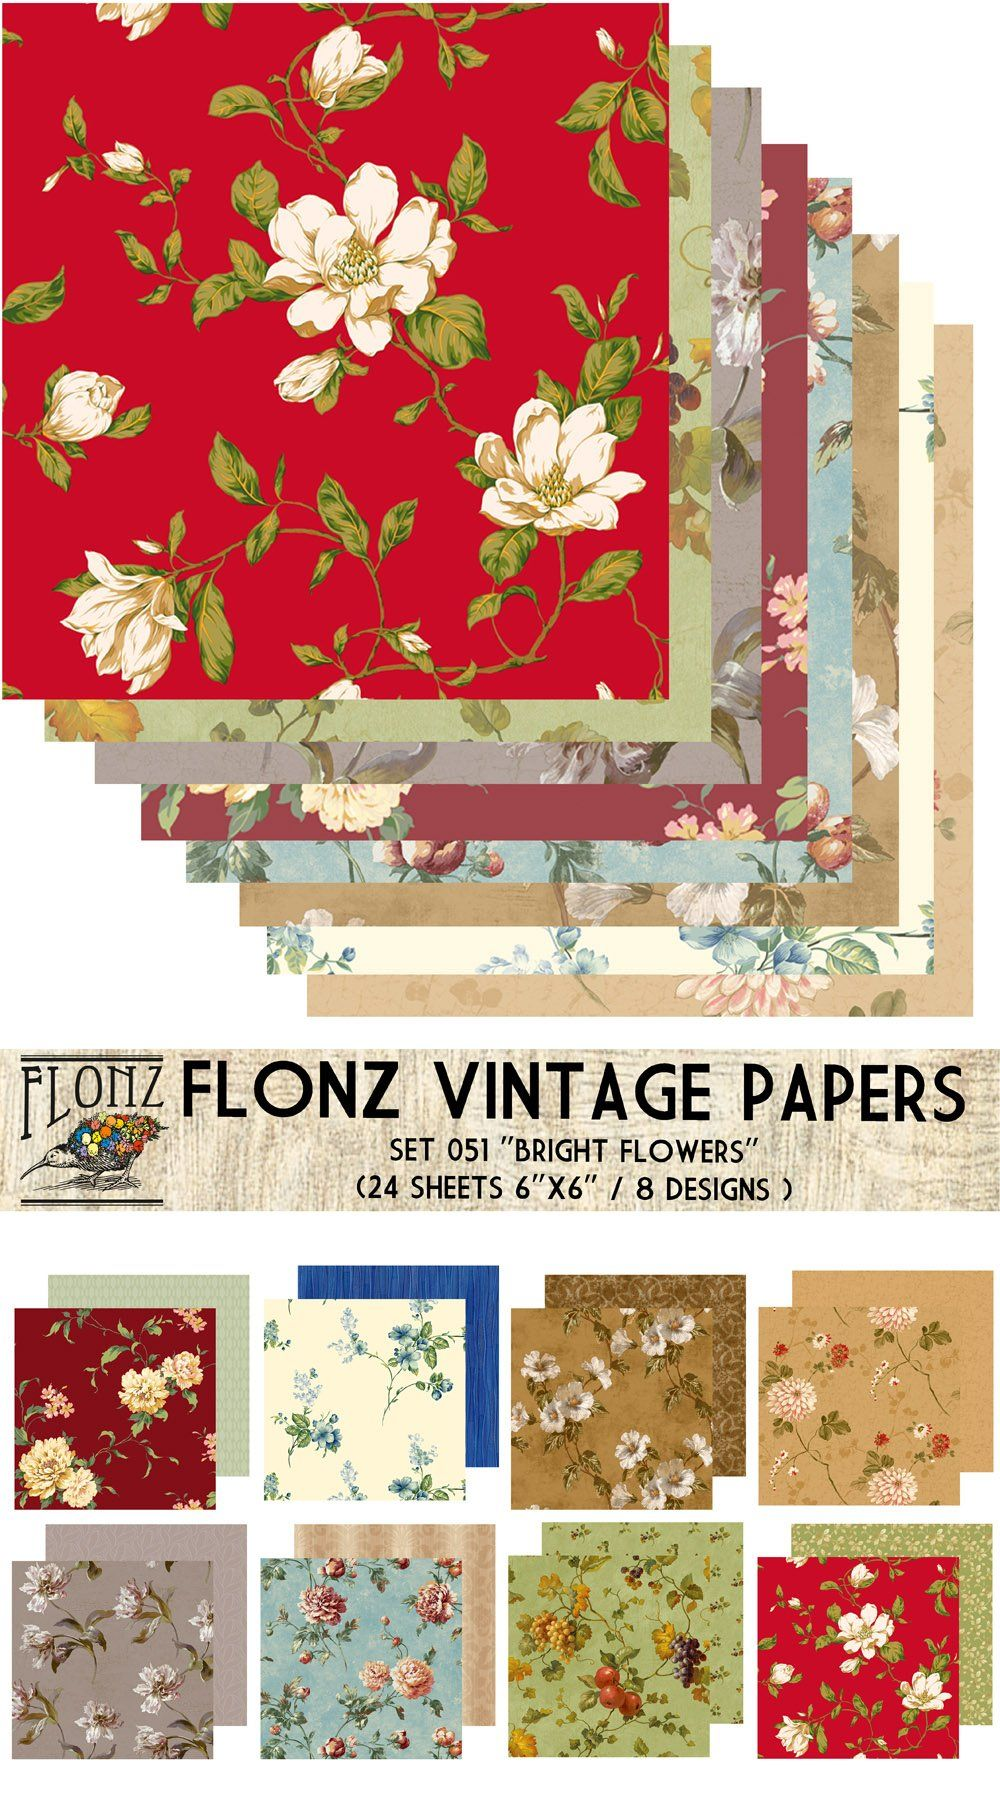 Paper Pack 24sh 15x15cm Bright Christmas FLONZ Vintage Paper for Scrapbooking and Craft